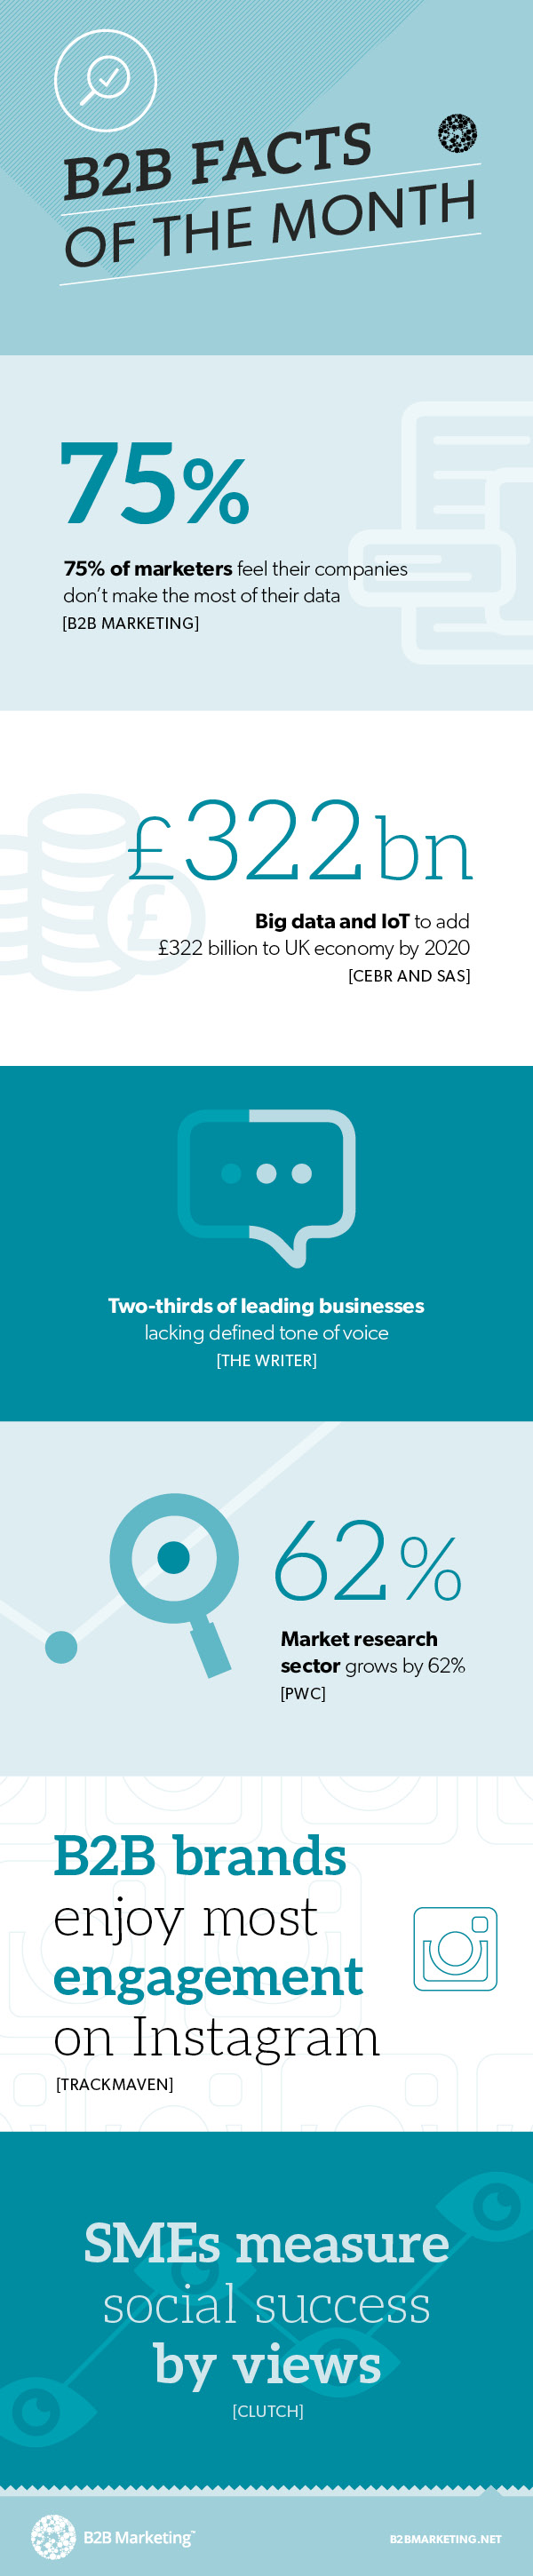 B2B Marketing Facts of the Month